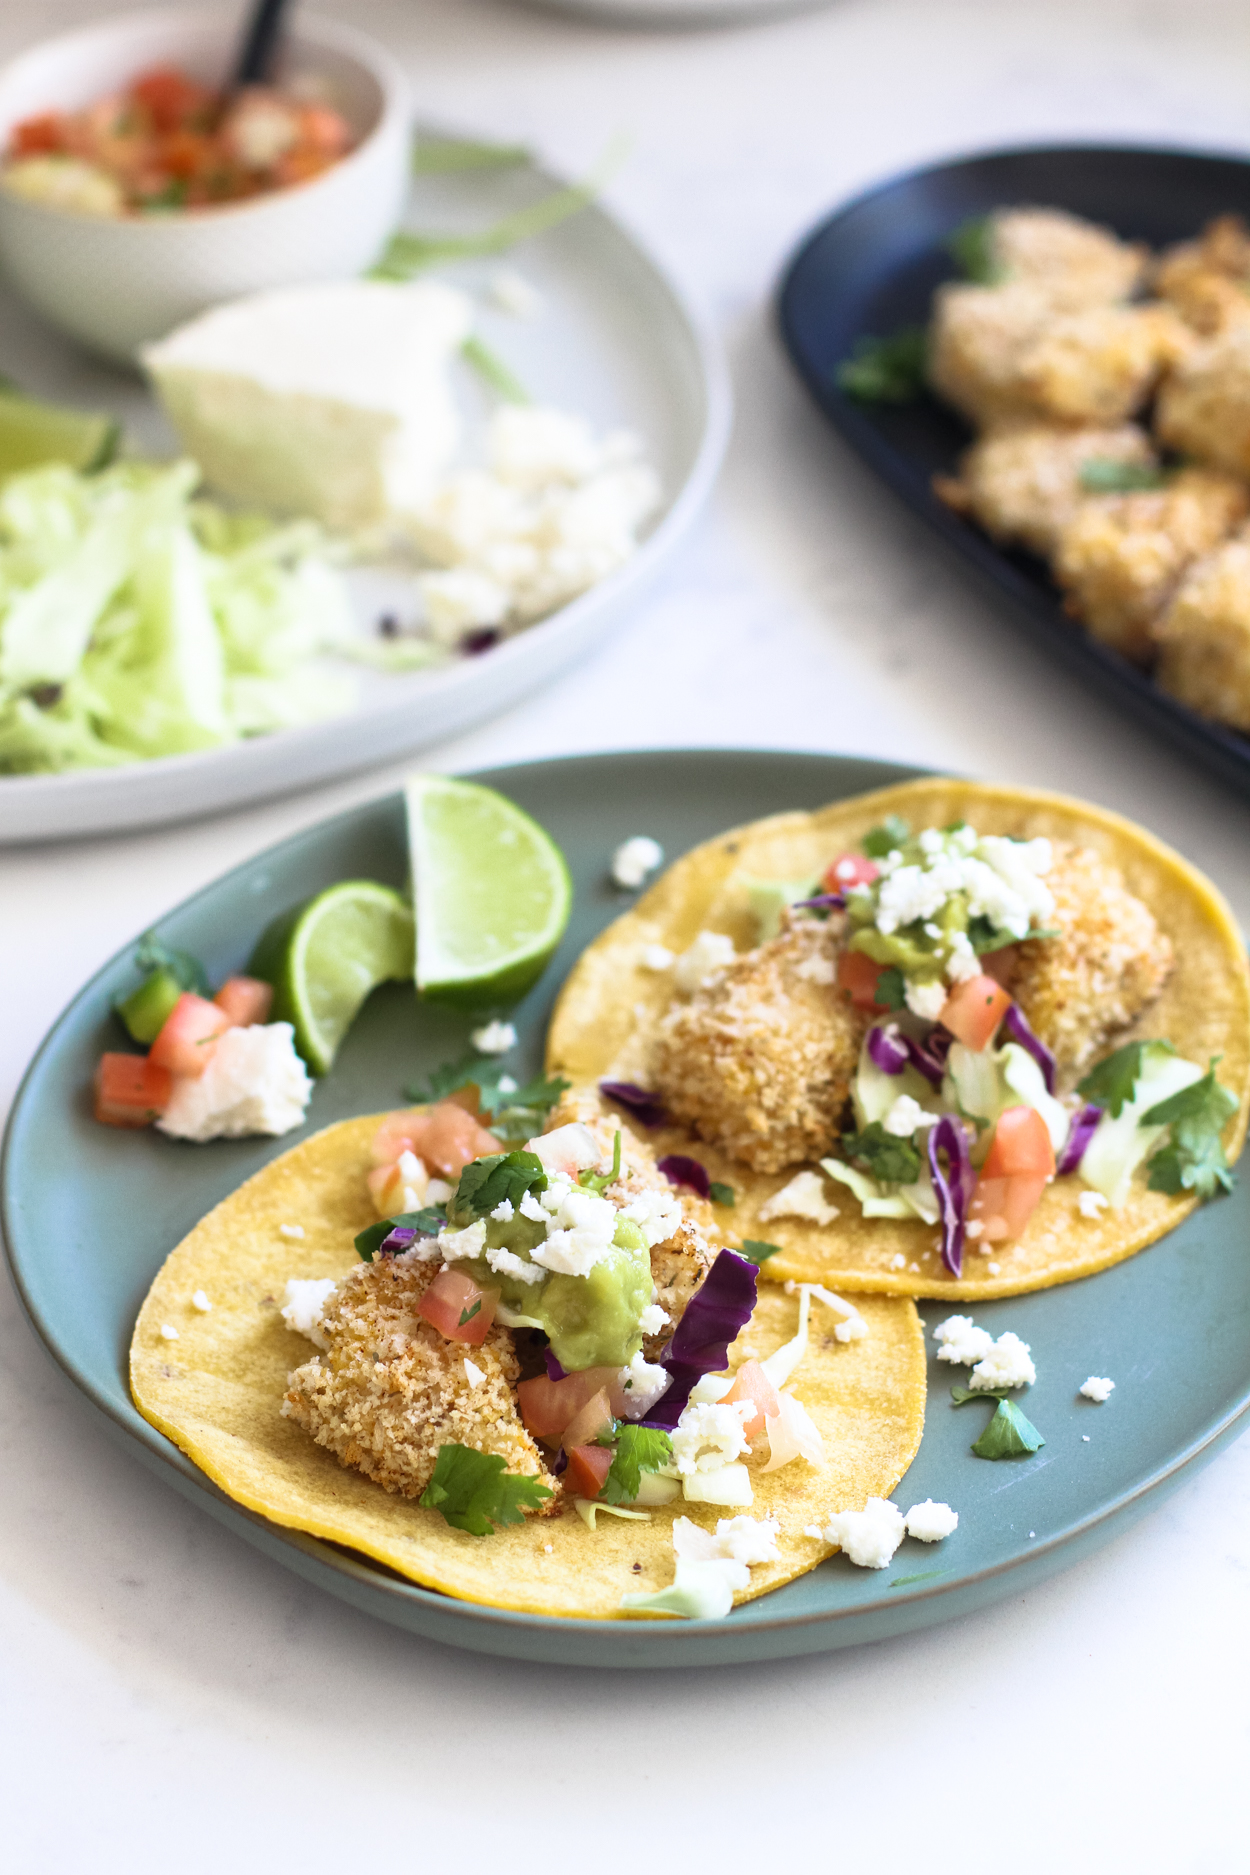 A blue plate with two baked fish tacos, tomatoes, queso fresco and limes to the side. Two plates of taco toppings and baked cod in the background